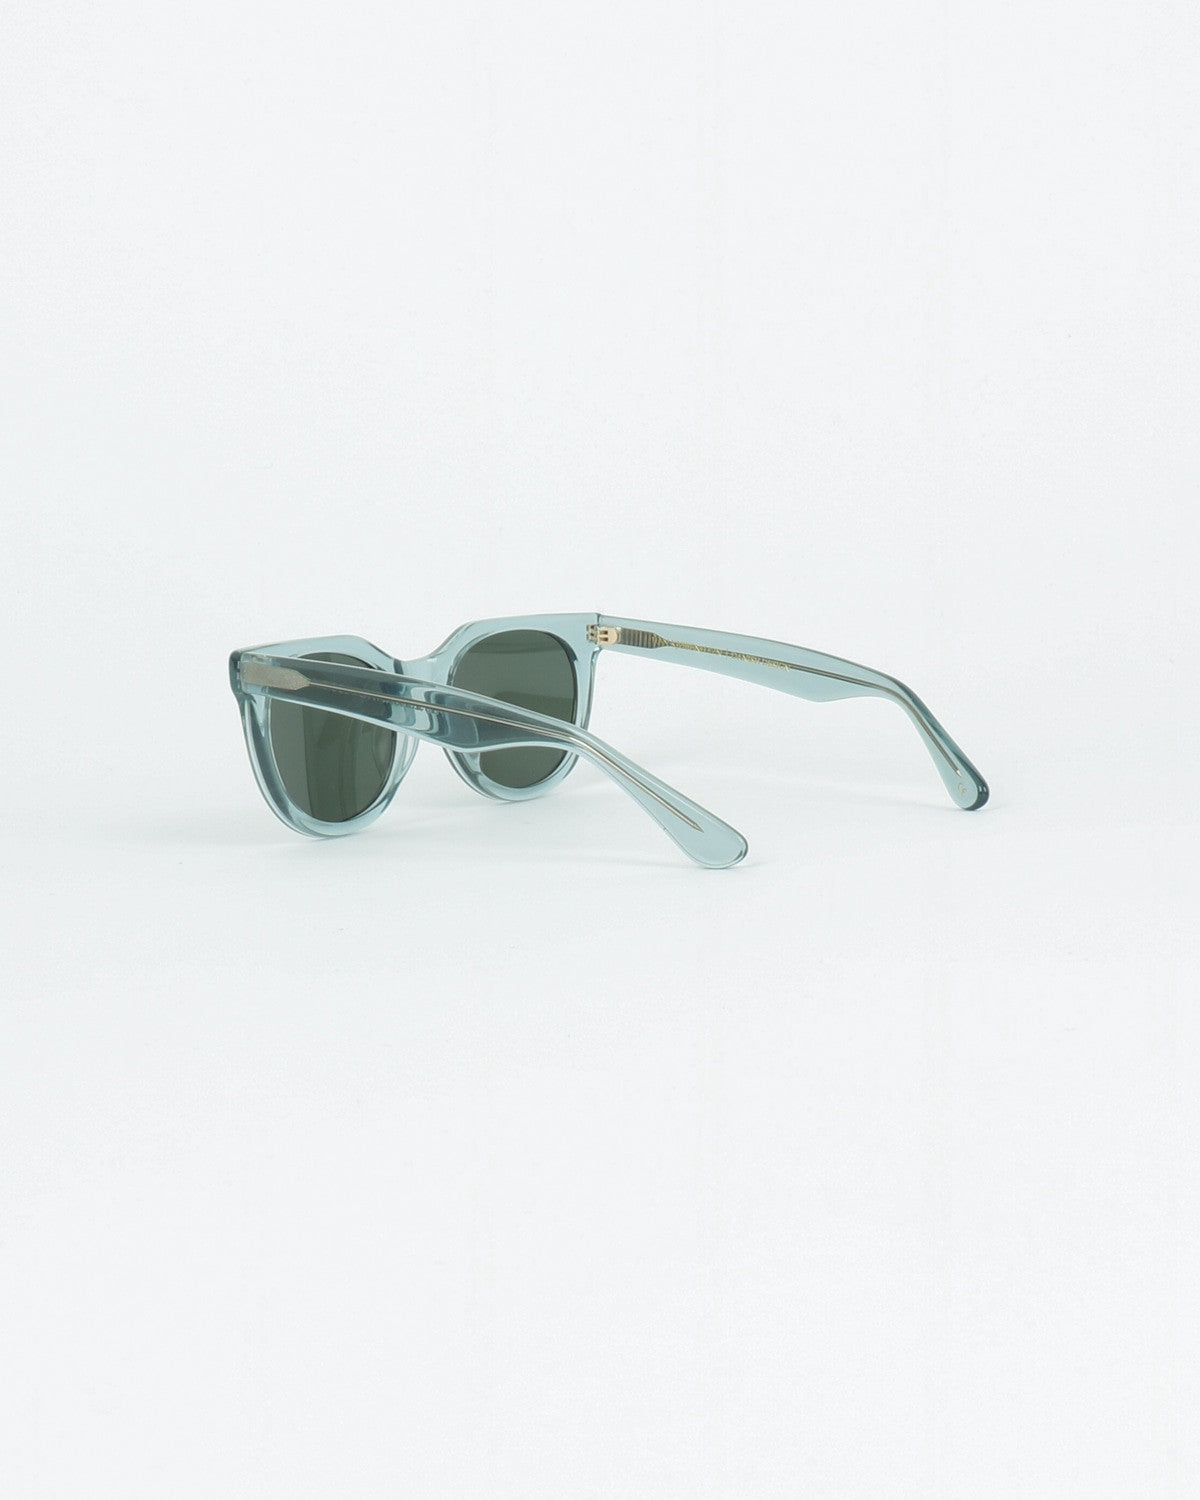 han kjobenhavn_paul senior_sunglasses_grey transparent_view_2_4